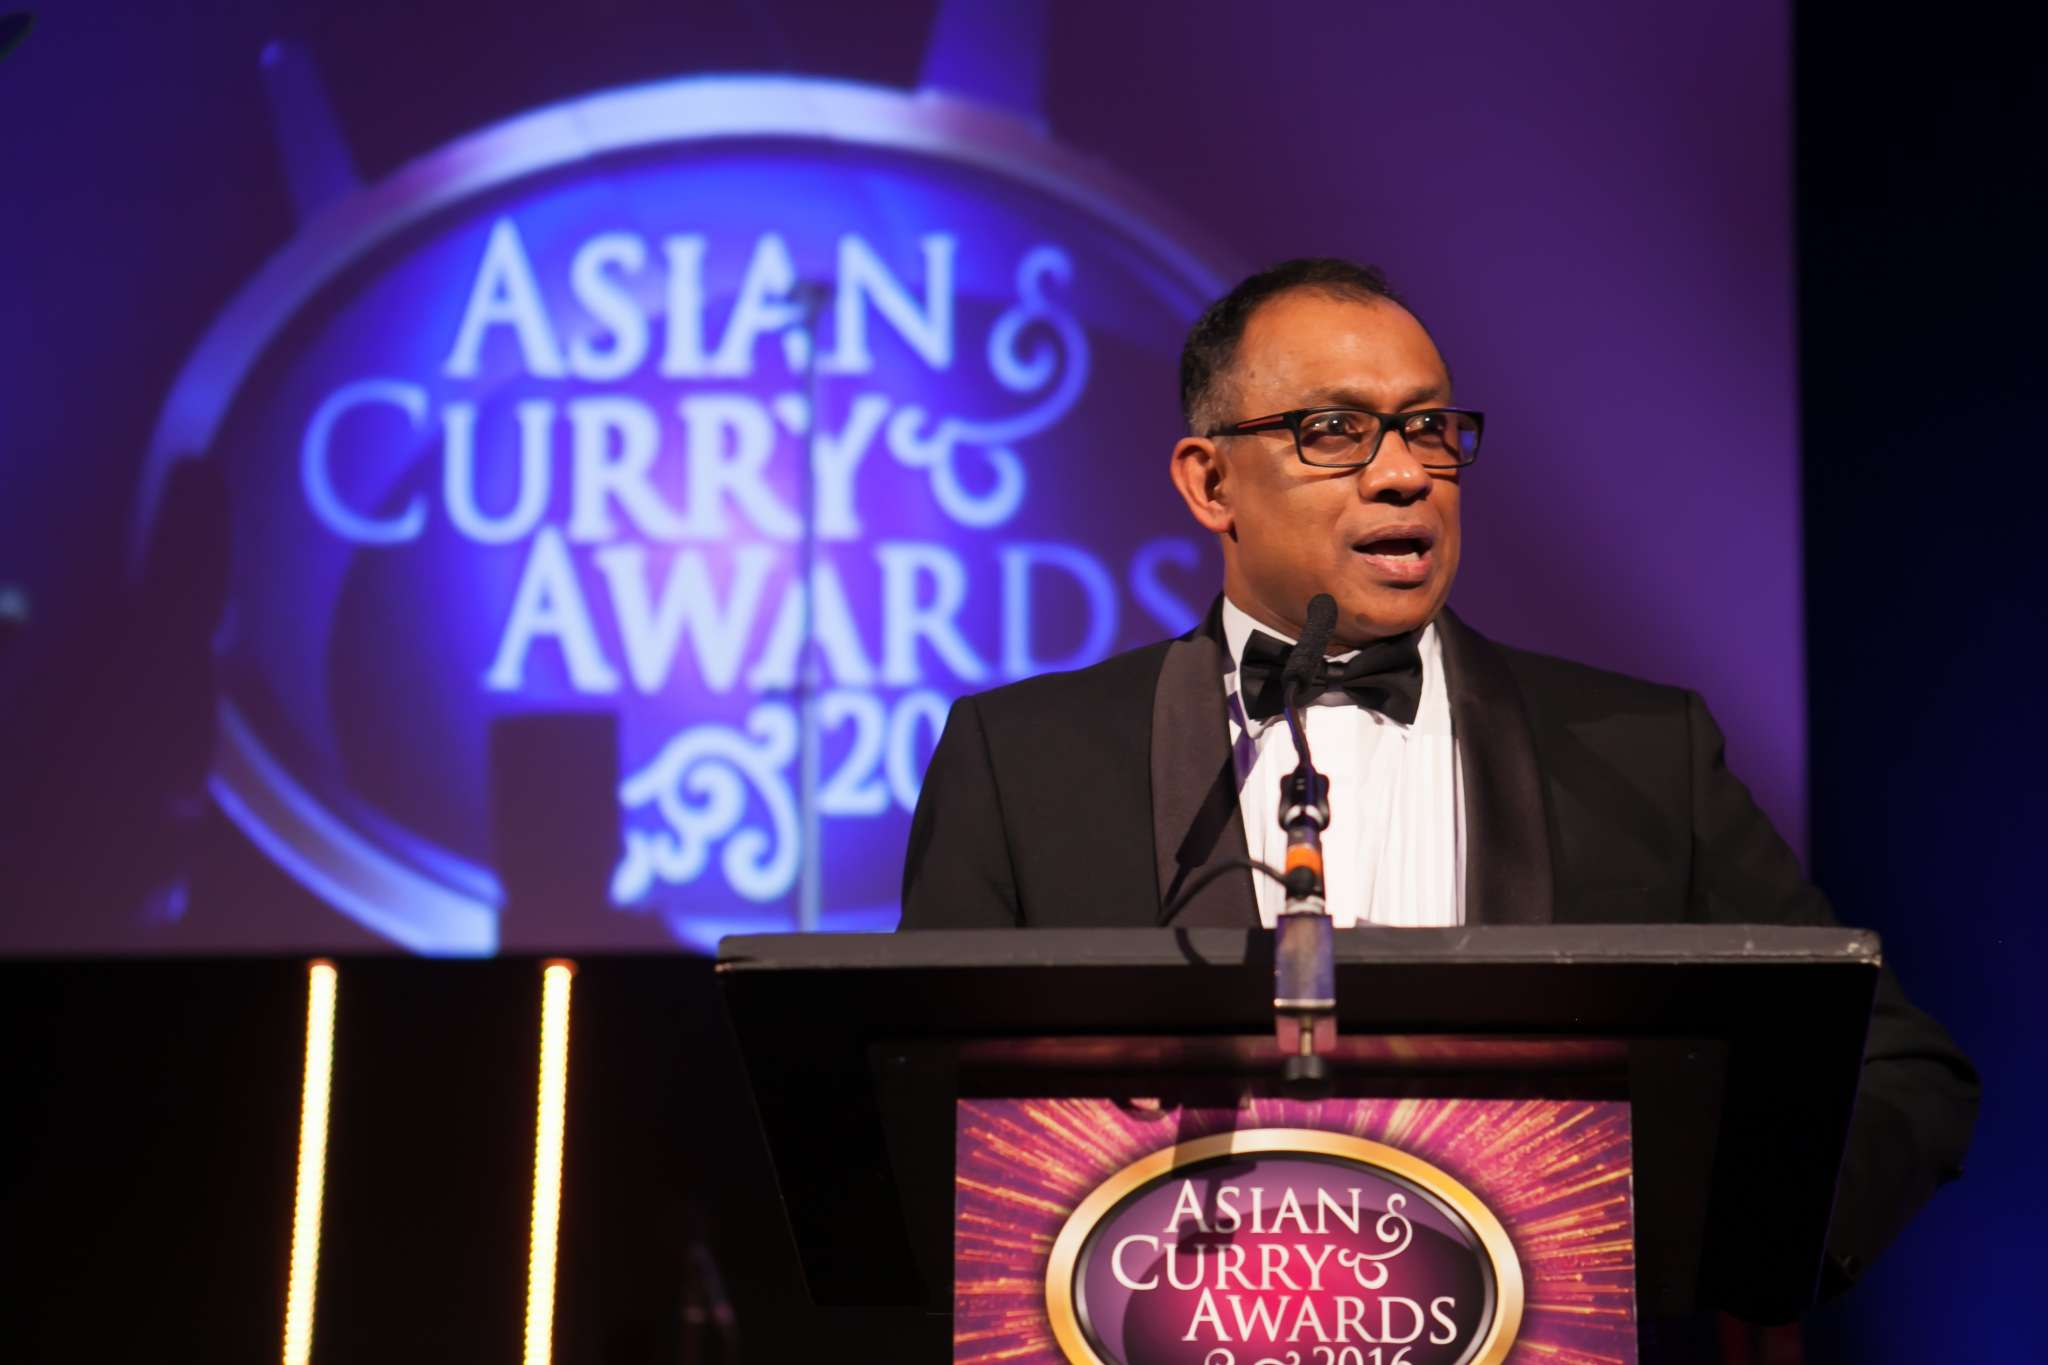 SURPRISE POLL OF CURRY RESTAURANTS PUTS LABOUR AHEAD